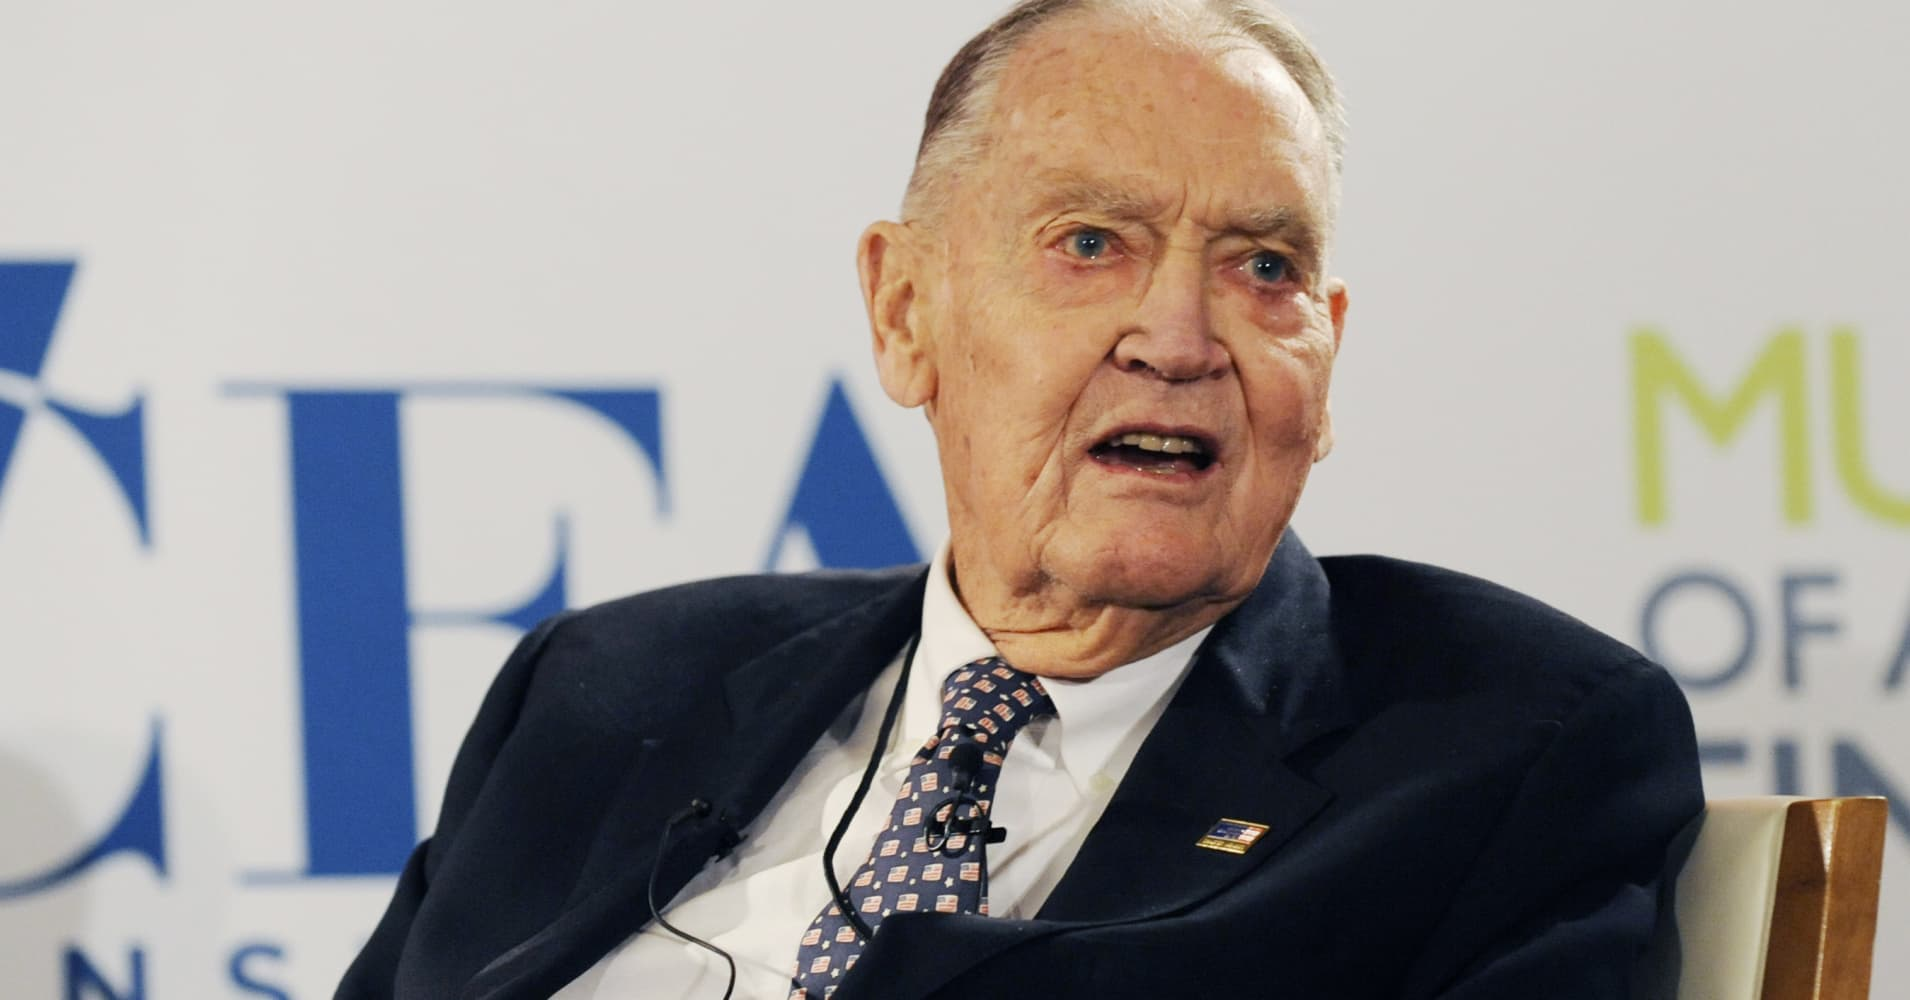 Jack Bogle: 'If you hold the stock market, you will grow with America'